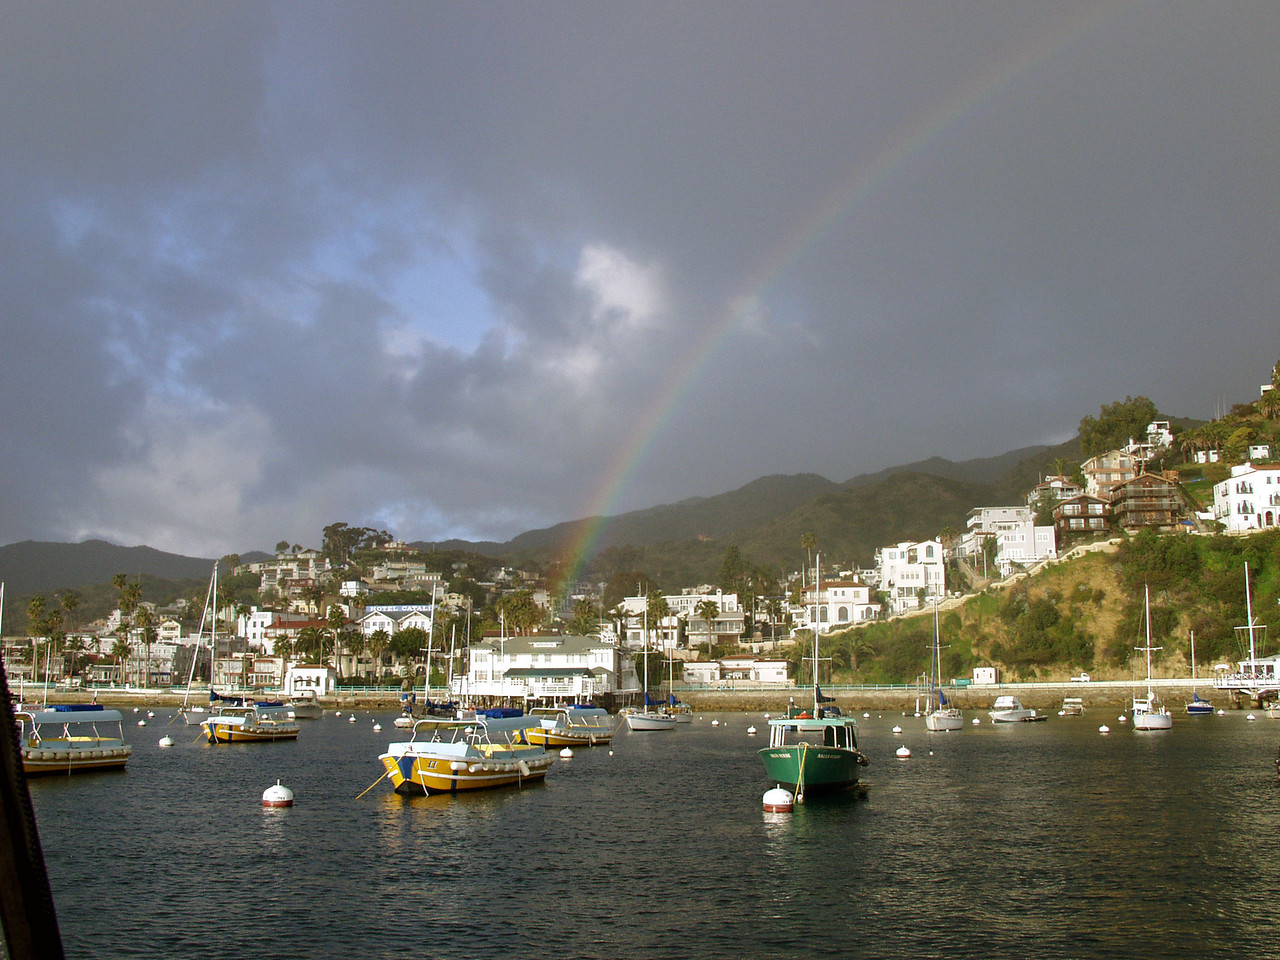 Rainbow over Avalon, California. Taken on April 9, 2001 with an Olympus E10.